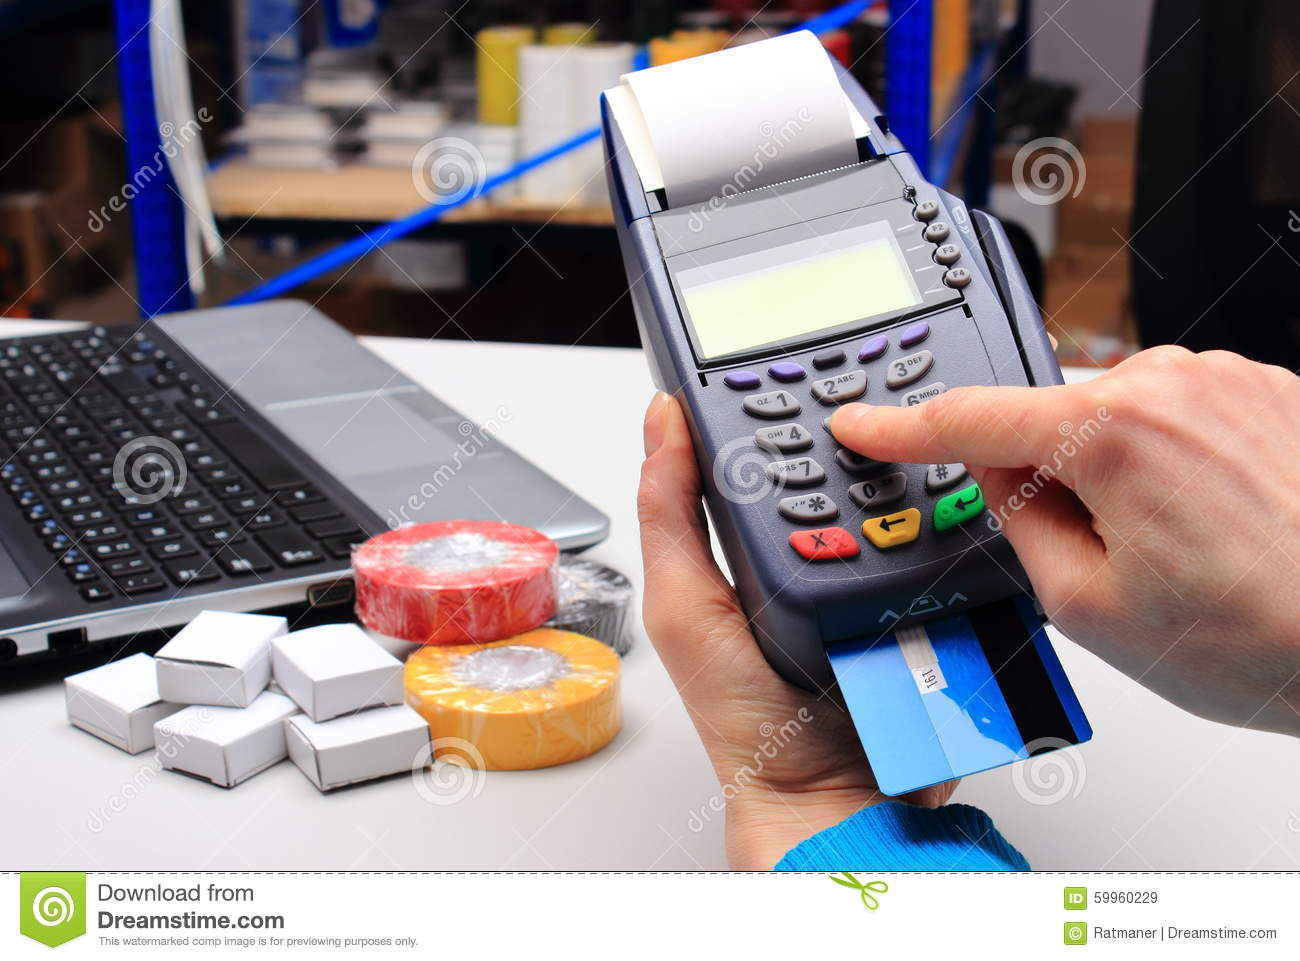 Paying With Credit Card In An Electrical Shop, Finance. Small Business Insurance In Florida. The Active Directory Is Rebuilding Indices. Programming Colleges In California. Cheap Auto Insurance Mi Shopify Drop Shipping. Dish Network Kalispell Mt Quotes About Future. How To Become A Professional Counselor. Massena Savings And Loan Orlando Oral Surgery. How To Check My Credit Card Balance